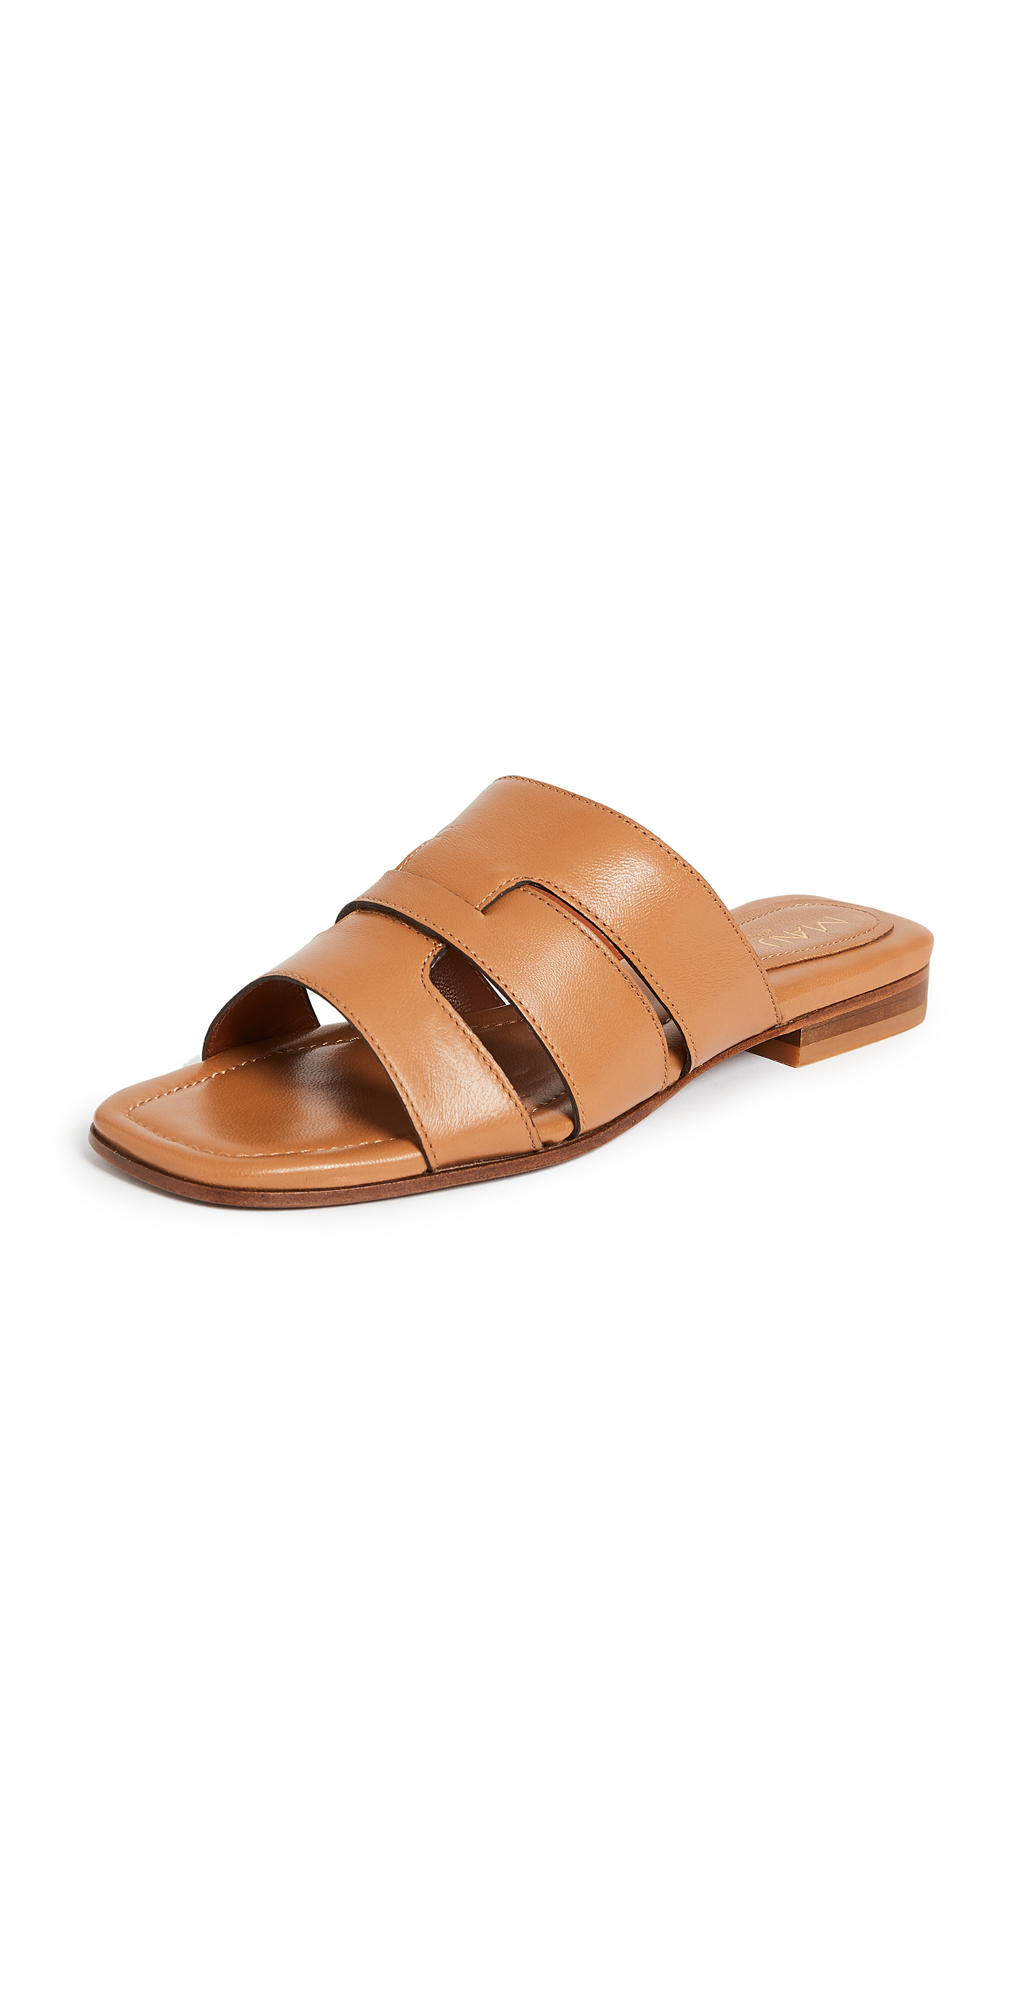 MANU Atelier Woven Leather Slipper Sandals